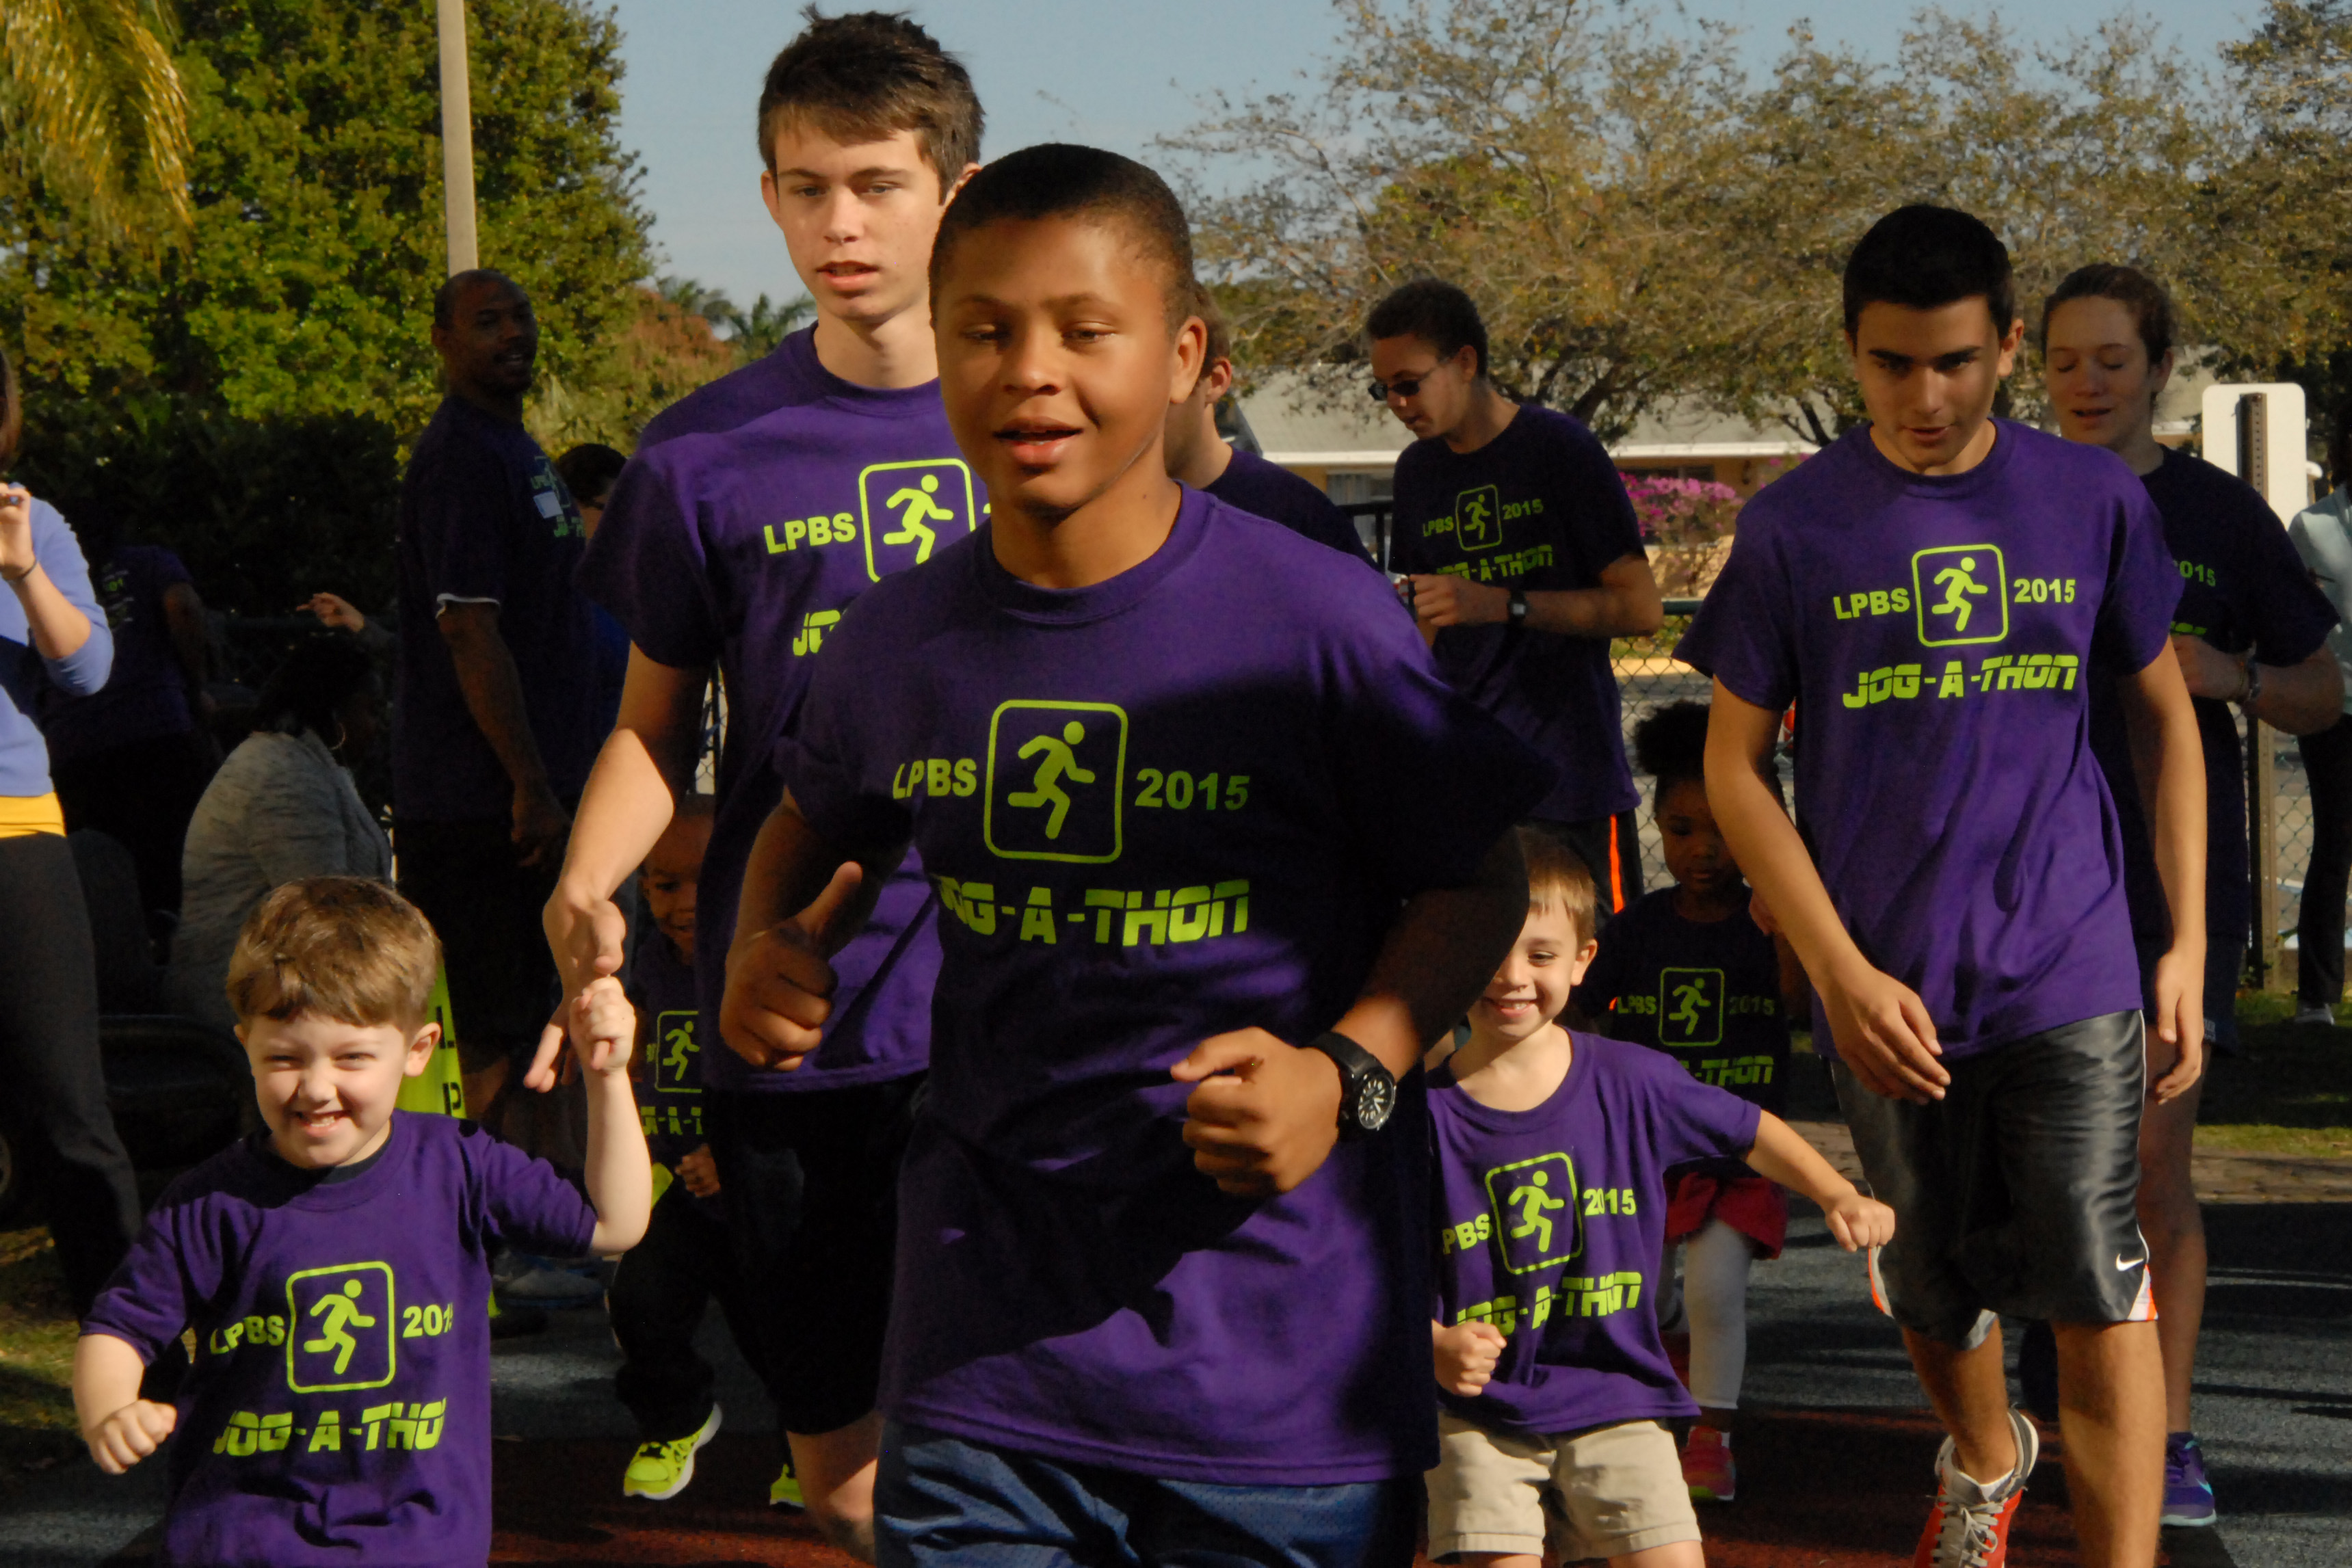 SAVE THE DATE: LPBS JOG-A-THON JAN. 29, 2016